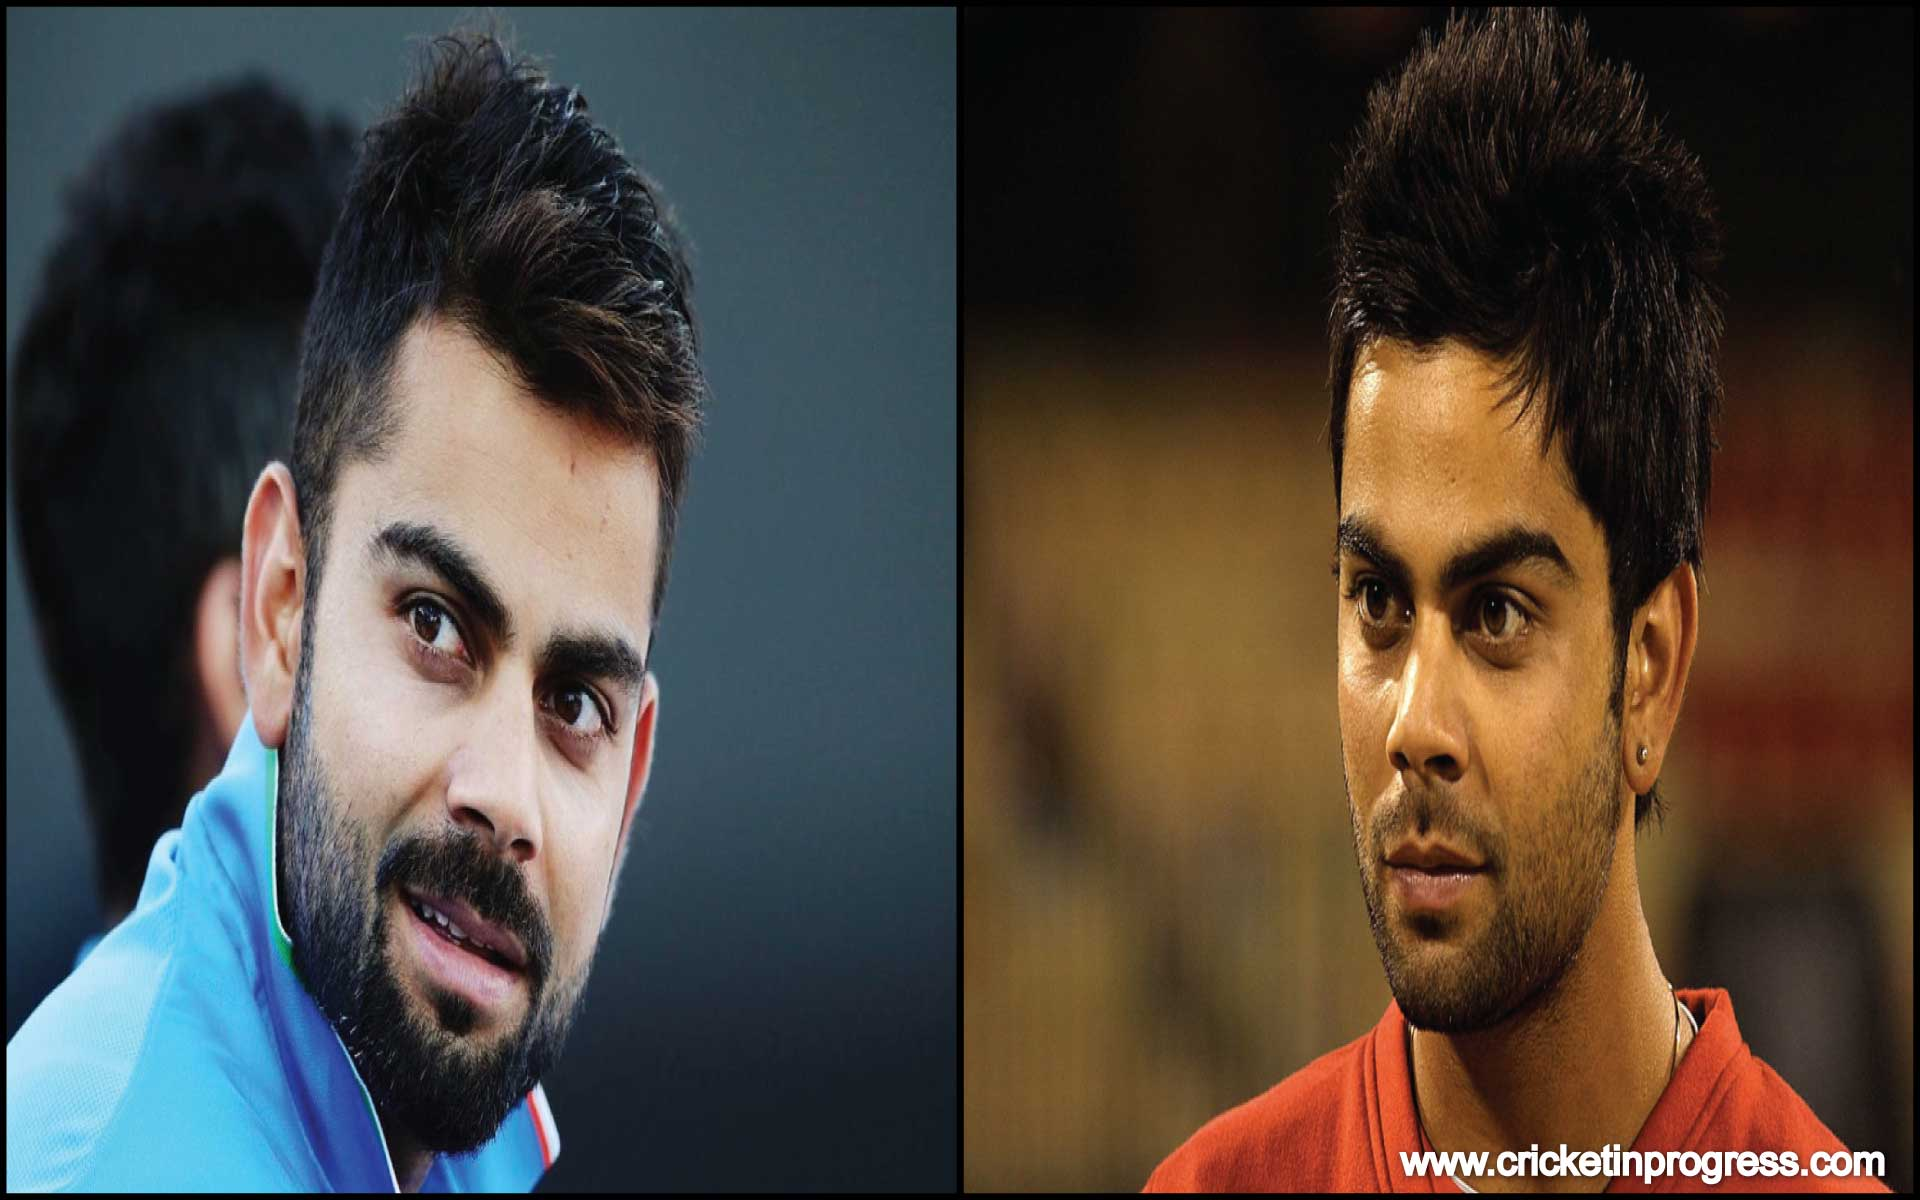 Virat Kohli - A Statistical Genius or a Batting Masterclass